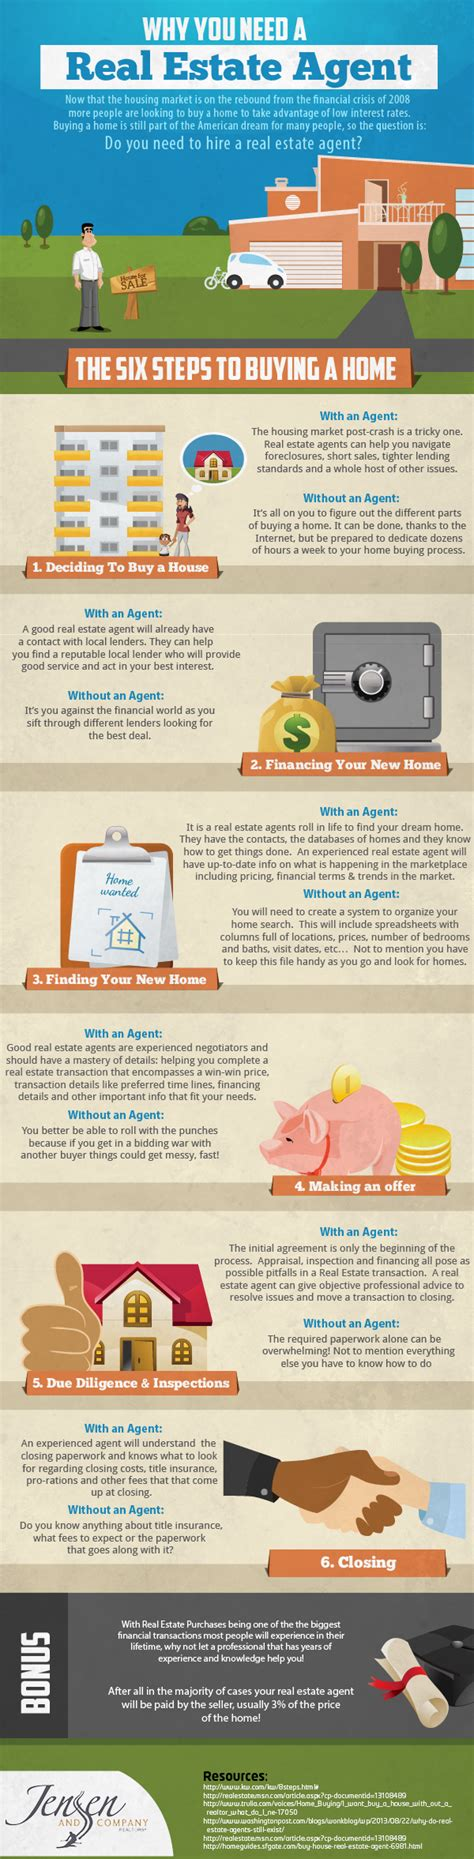 do you need a realestate agent to buy a house keeping current matters why you need a real estate agent infographic